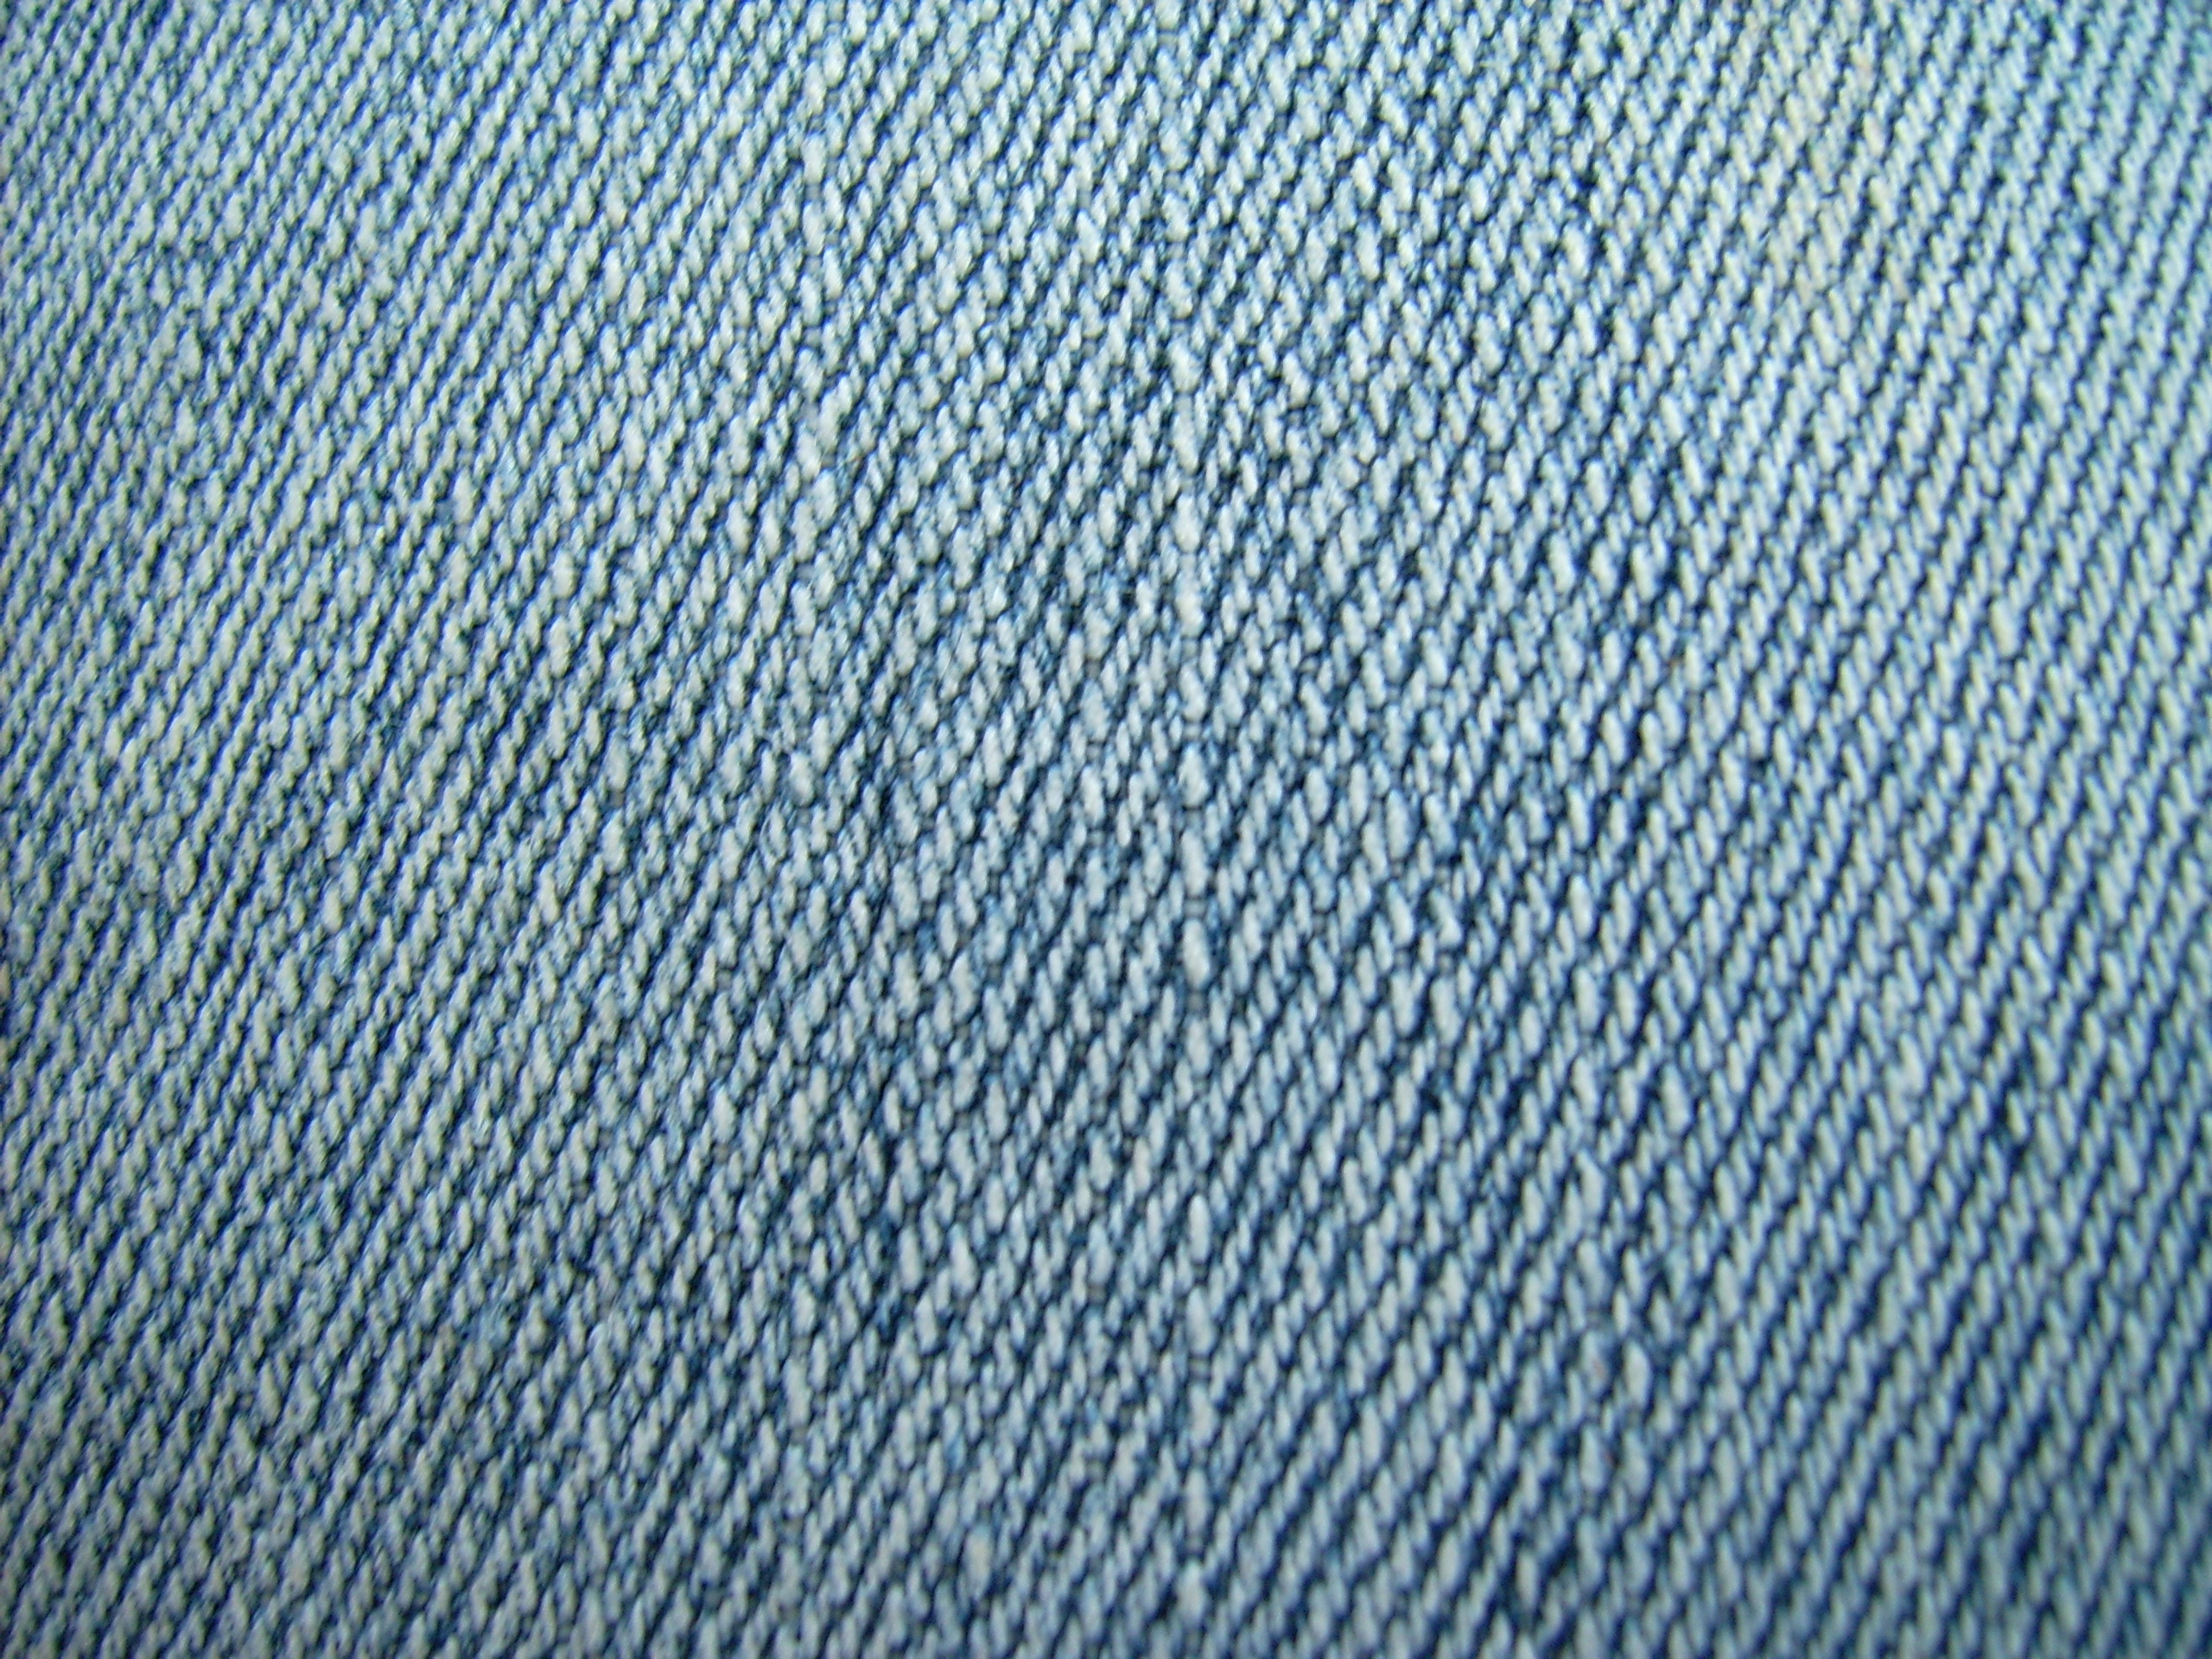 Denim Texture Ttainted Sharbena Resources Stock Images Textures Desktop Wallpaper